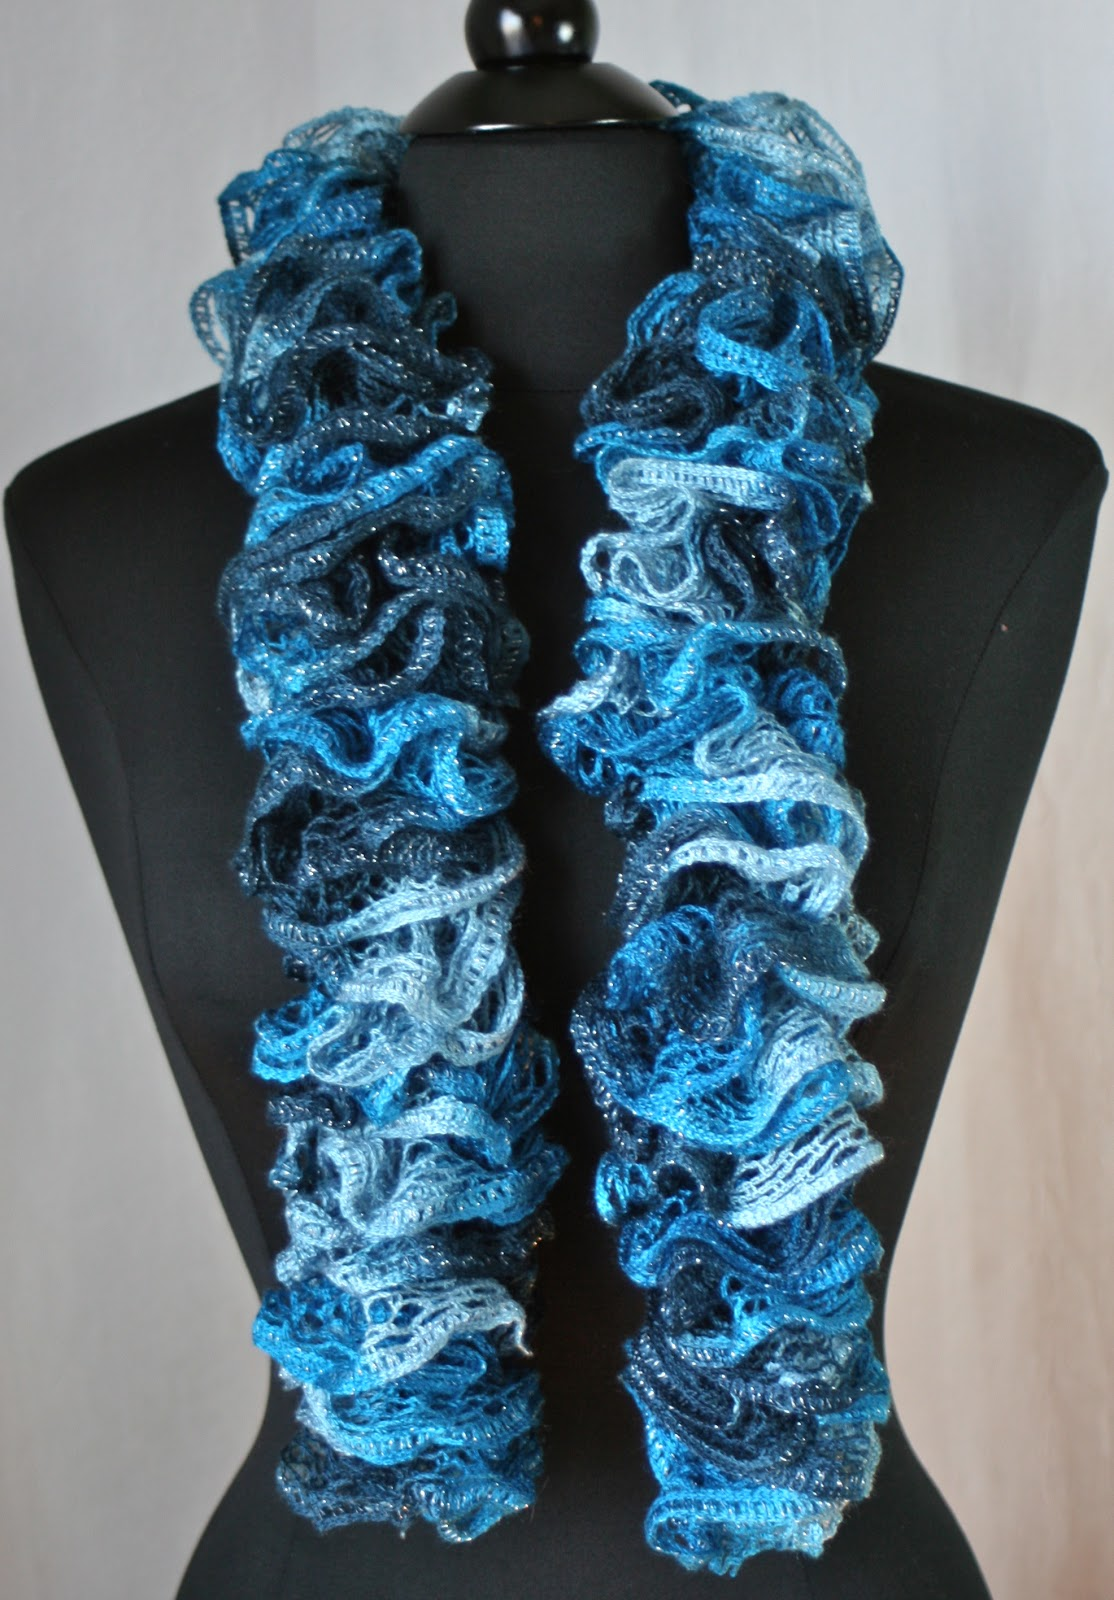 Knitting Pattern For A Ruffle Scarf : Crocheted Ruffle Scarf in Jive Crochet Pinterest